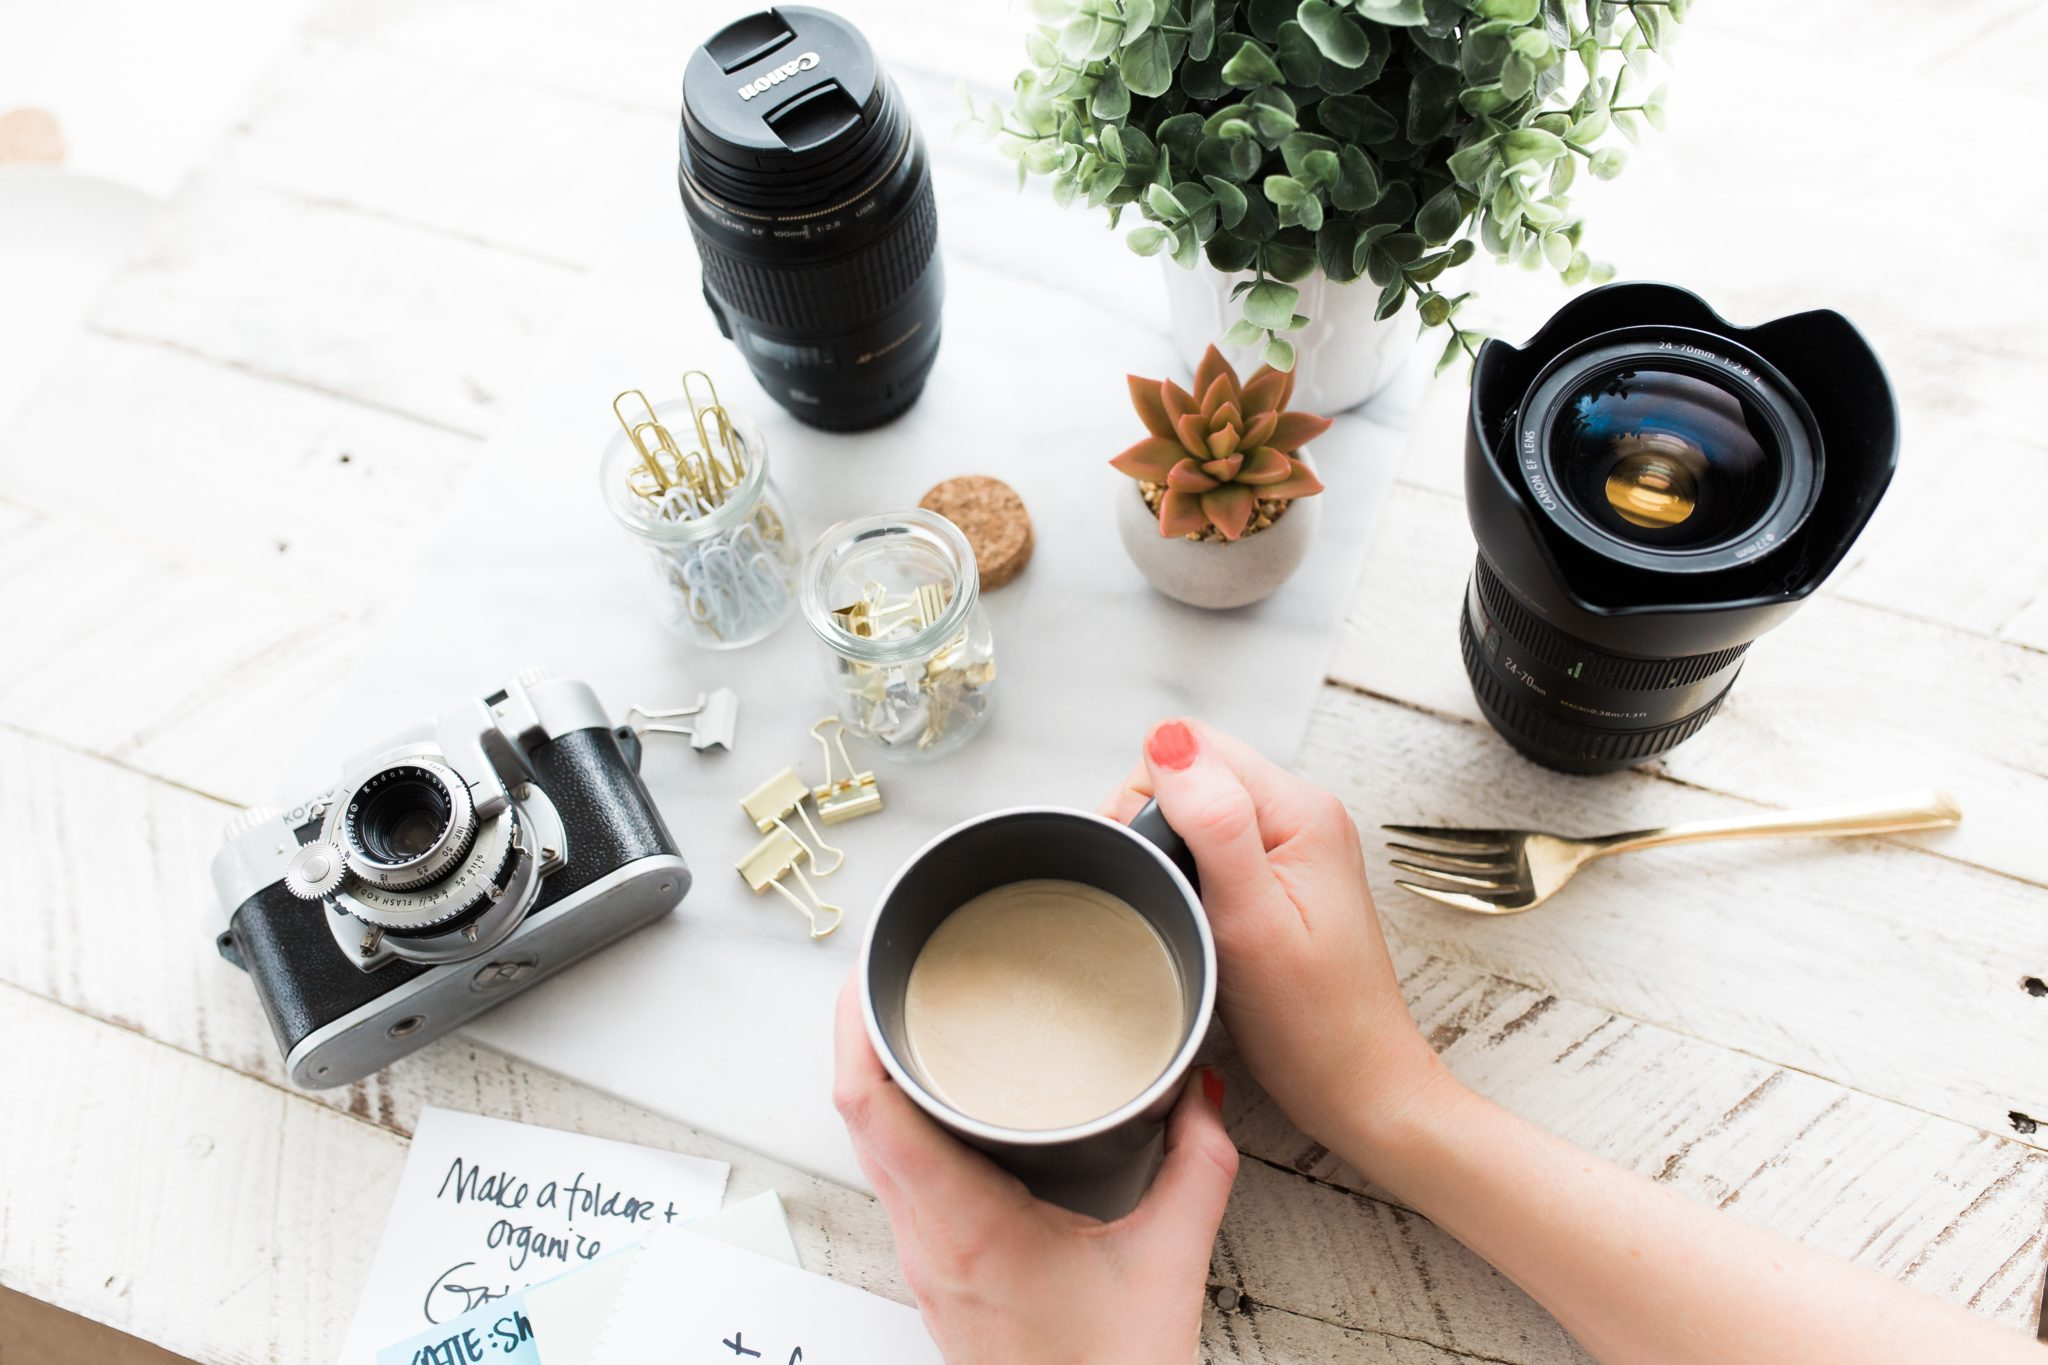 Cameras and coffee flatlay | © Brooke Lark/Unsplash